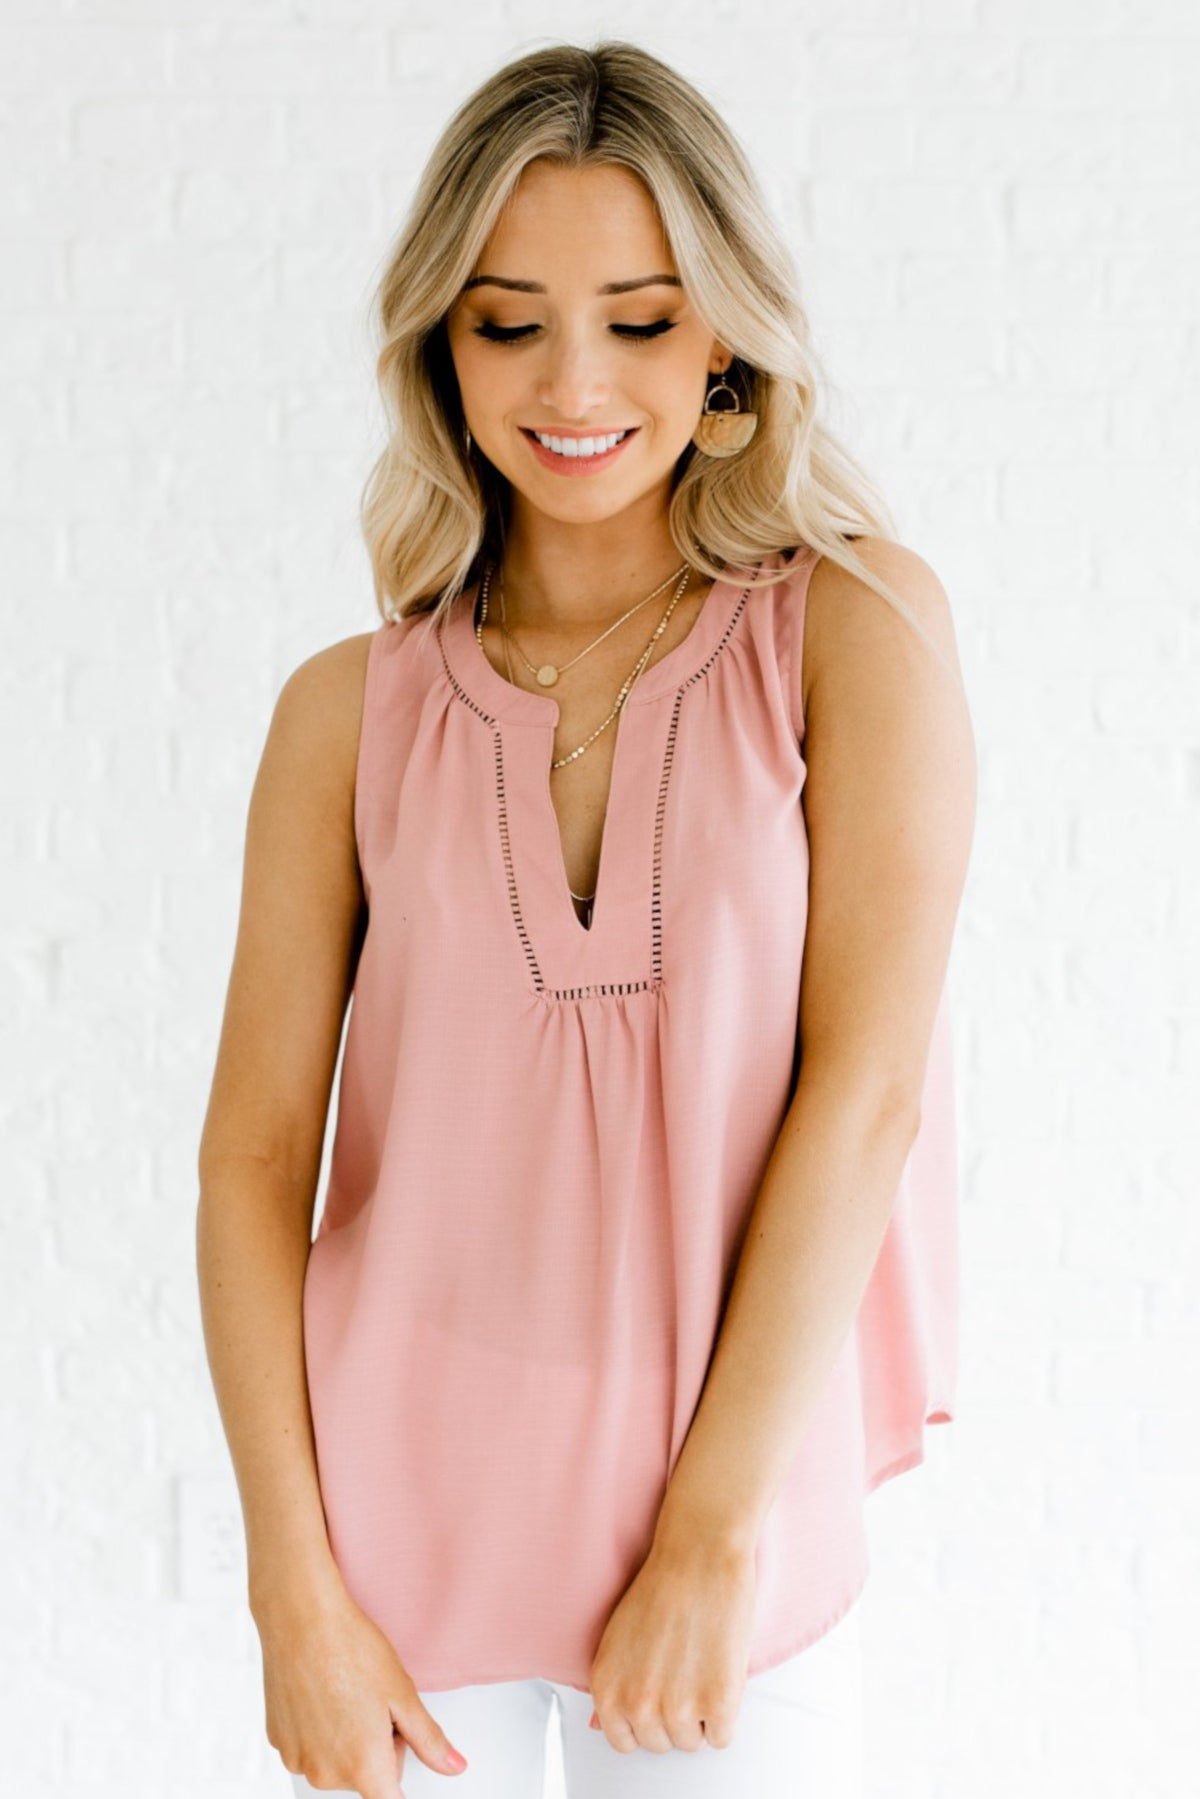 Pink Sleeveless Style Flowy Silhouette Boutique Blouses for Women